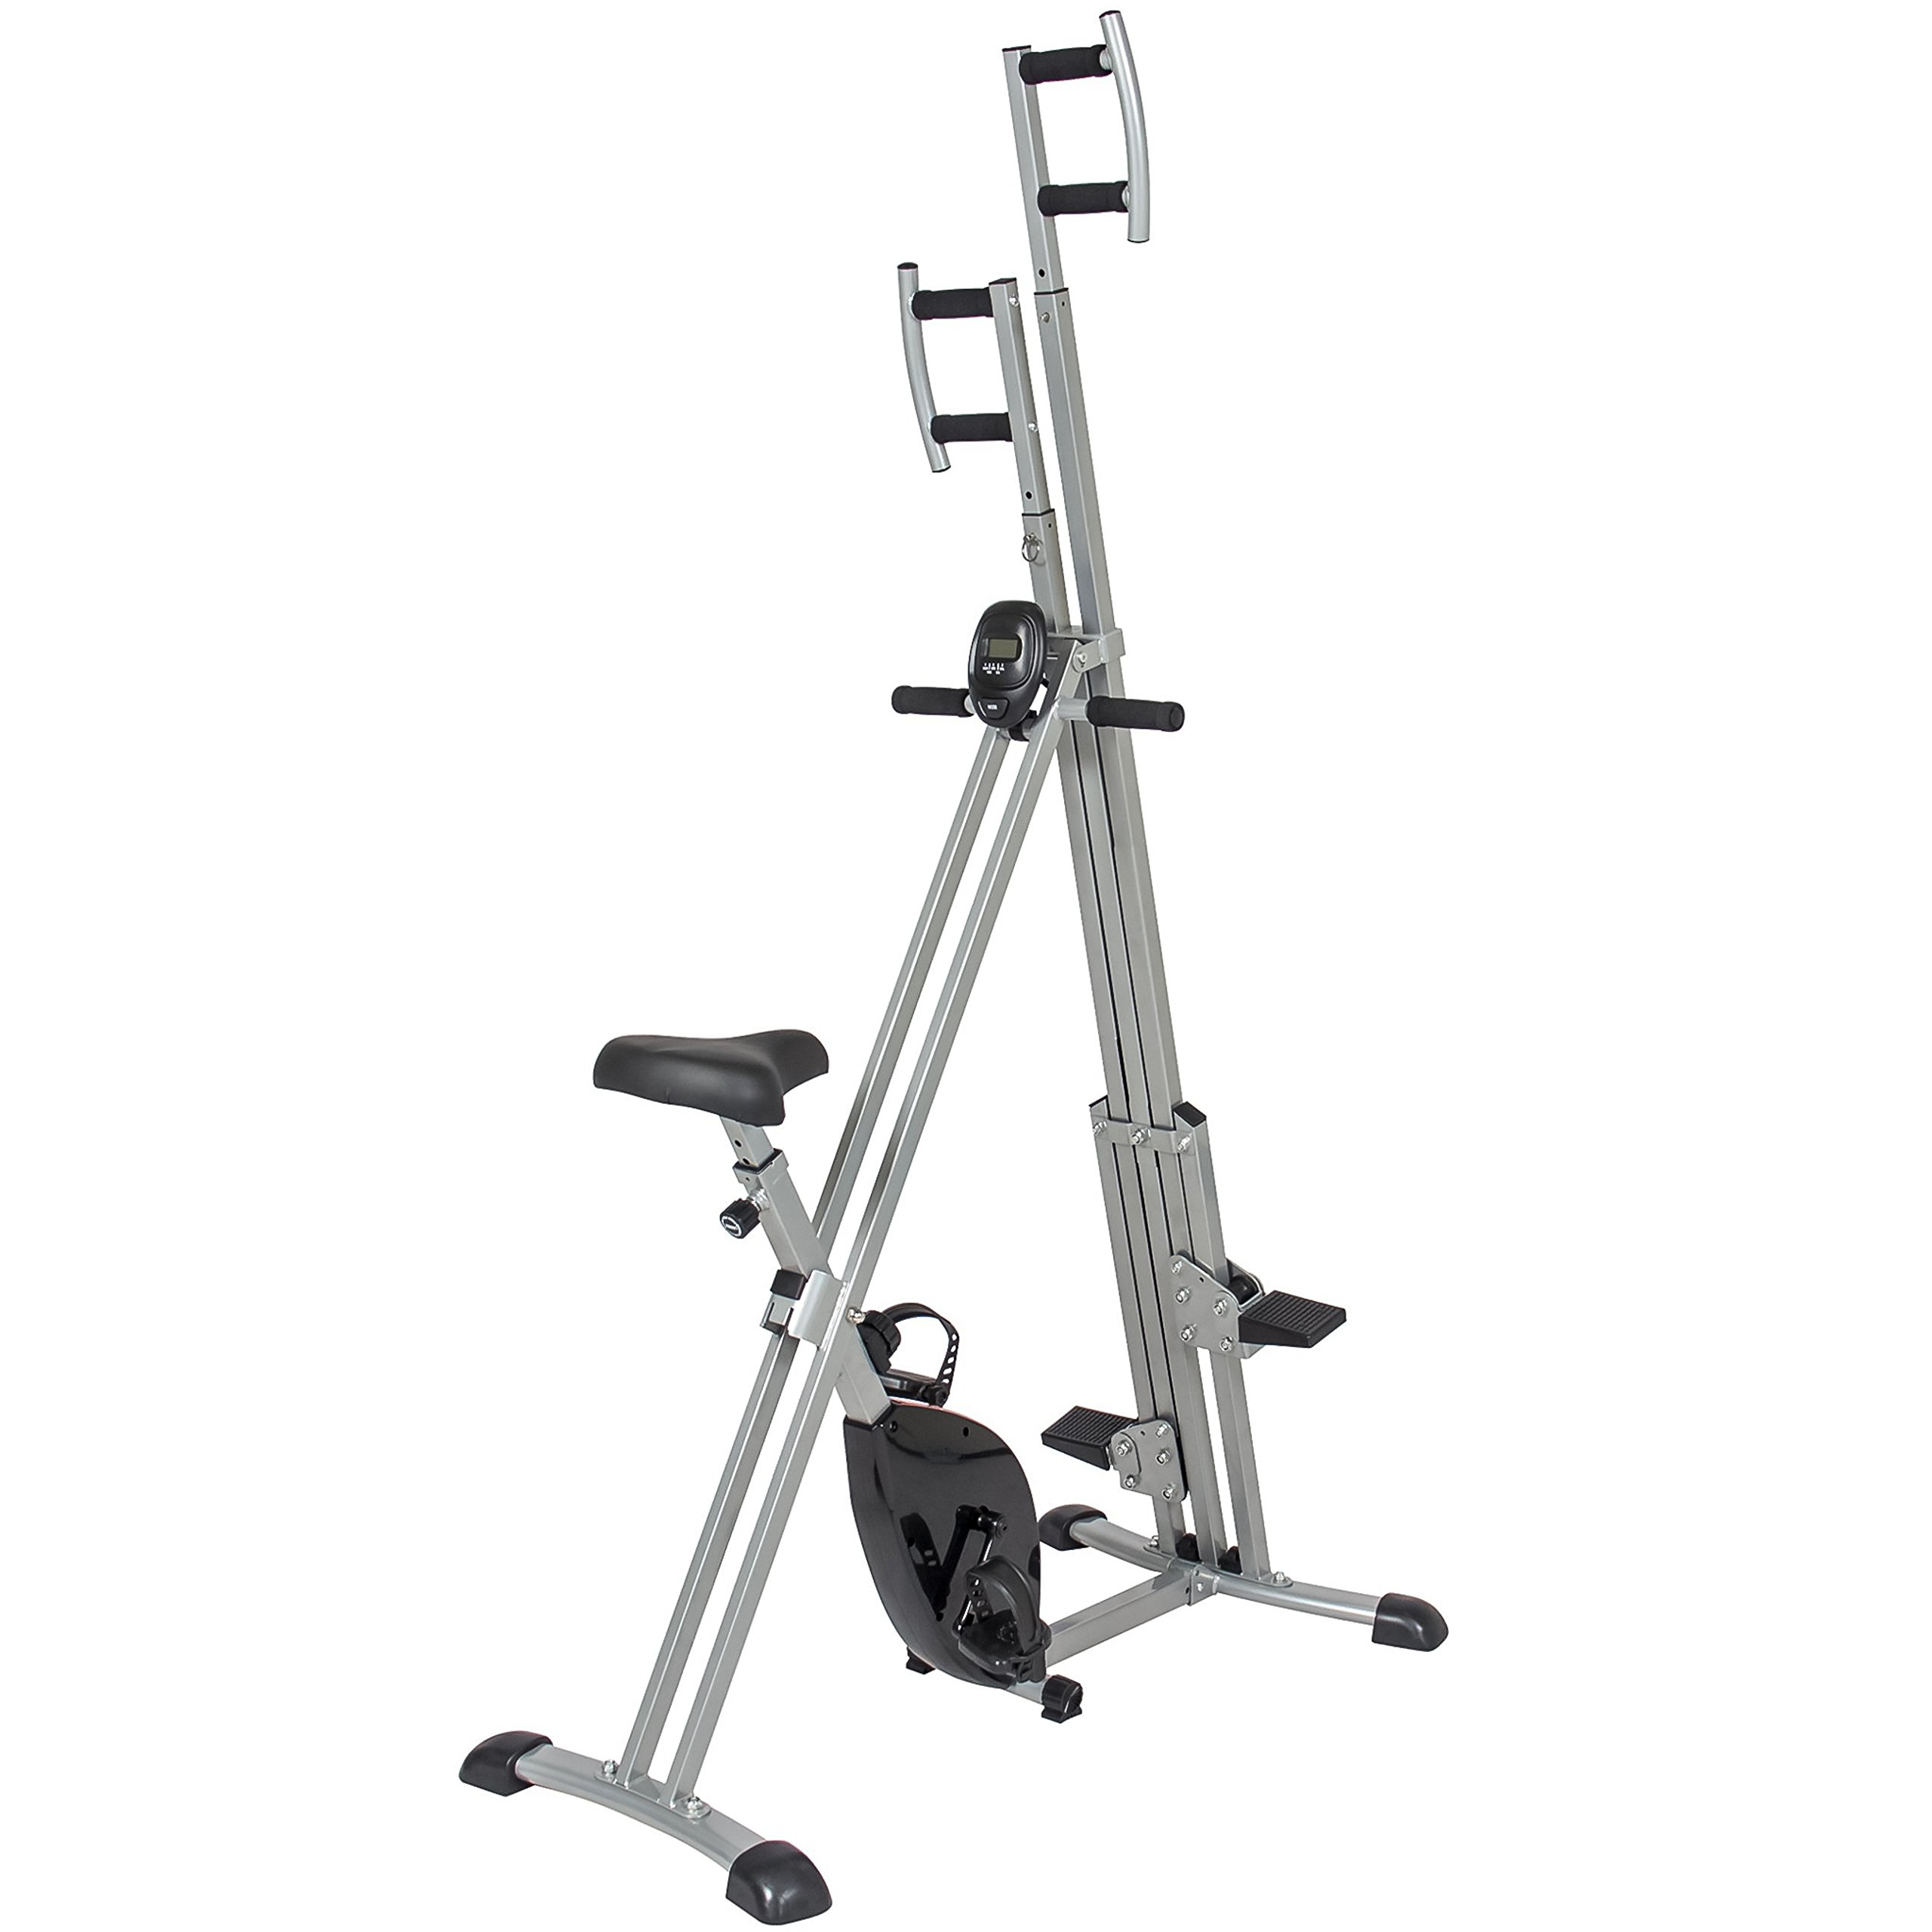 Best Choice Products Total Body 2-in-1 Vertical Climber Magnetic Exercise Bike Fitness Machine by Best Choice Products (Image #1)